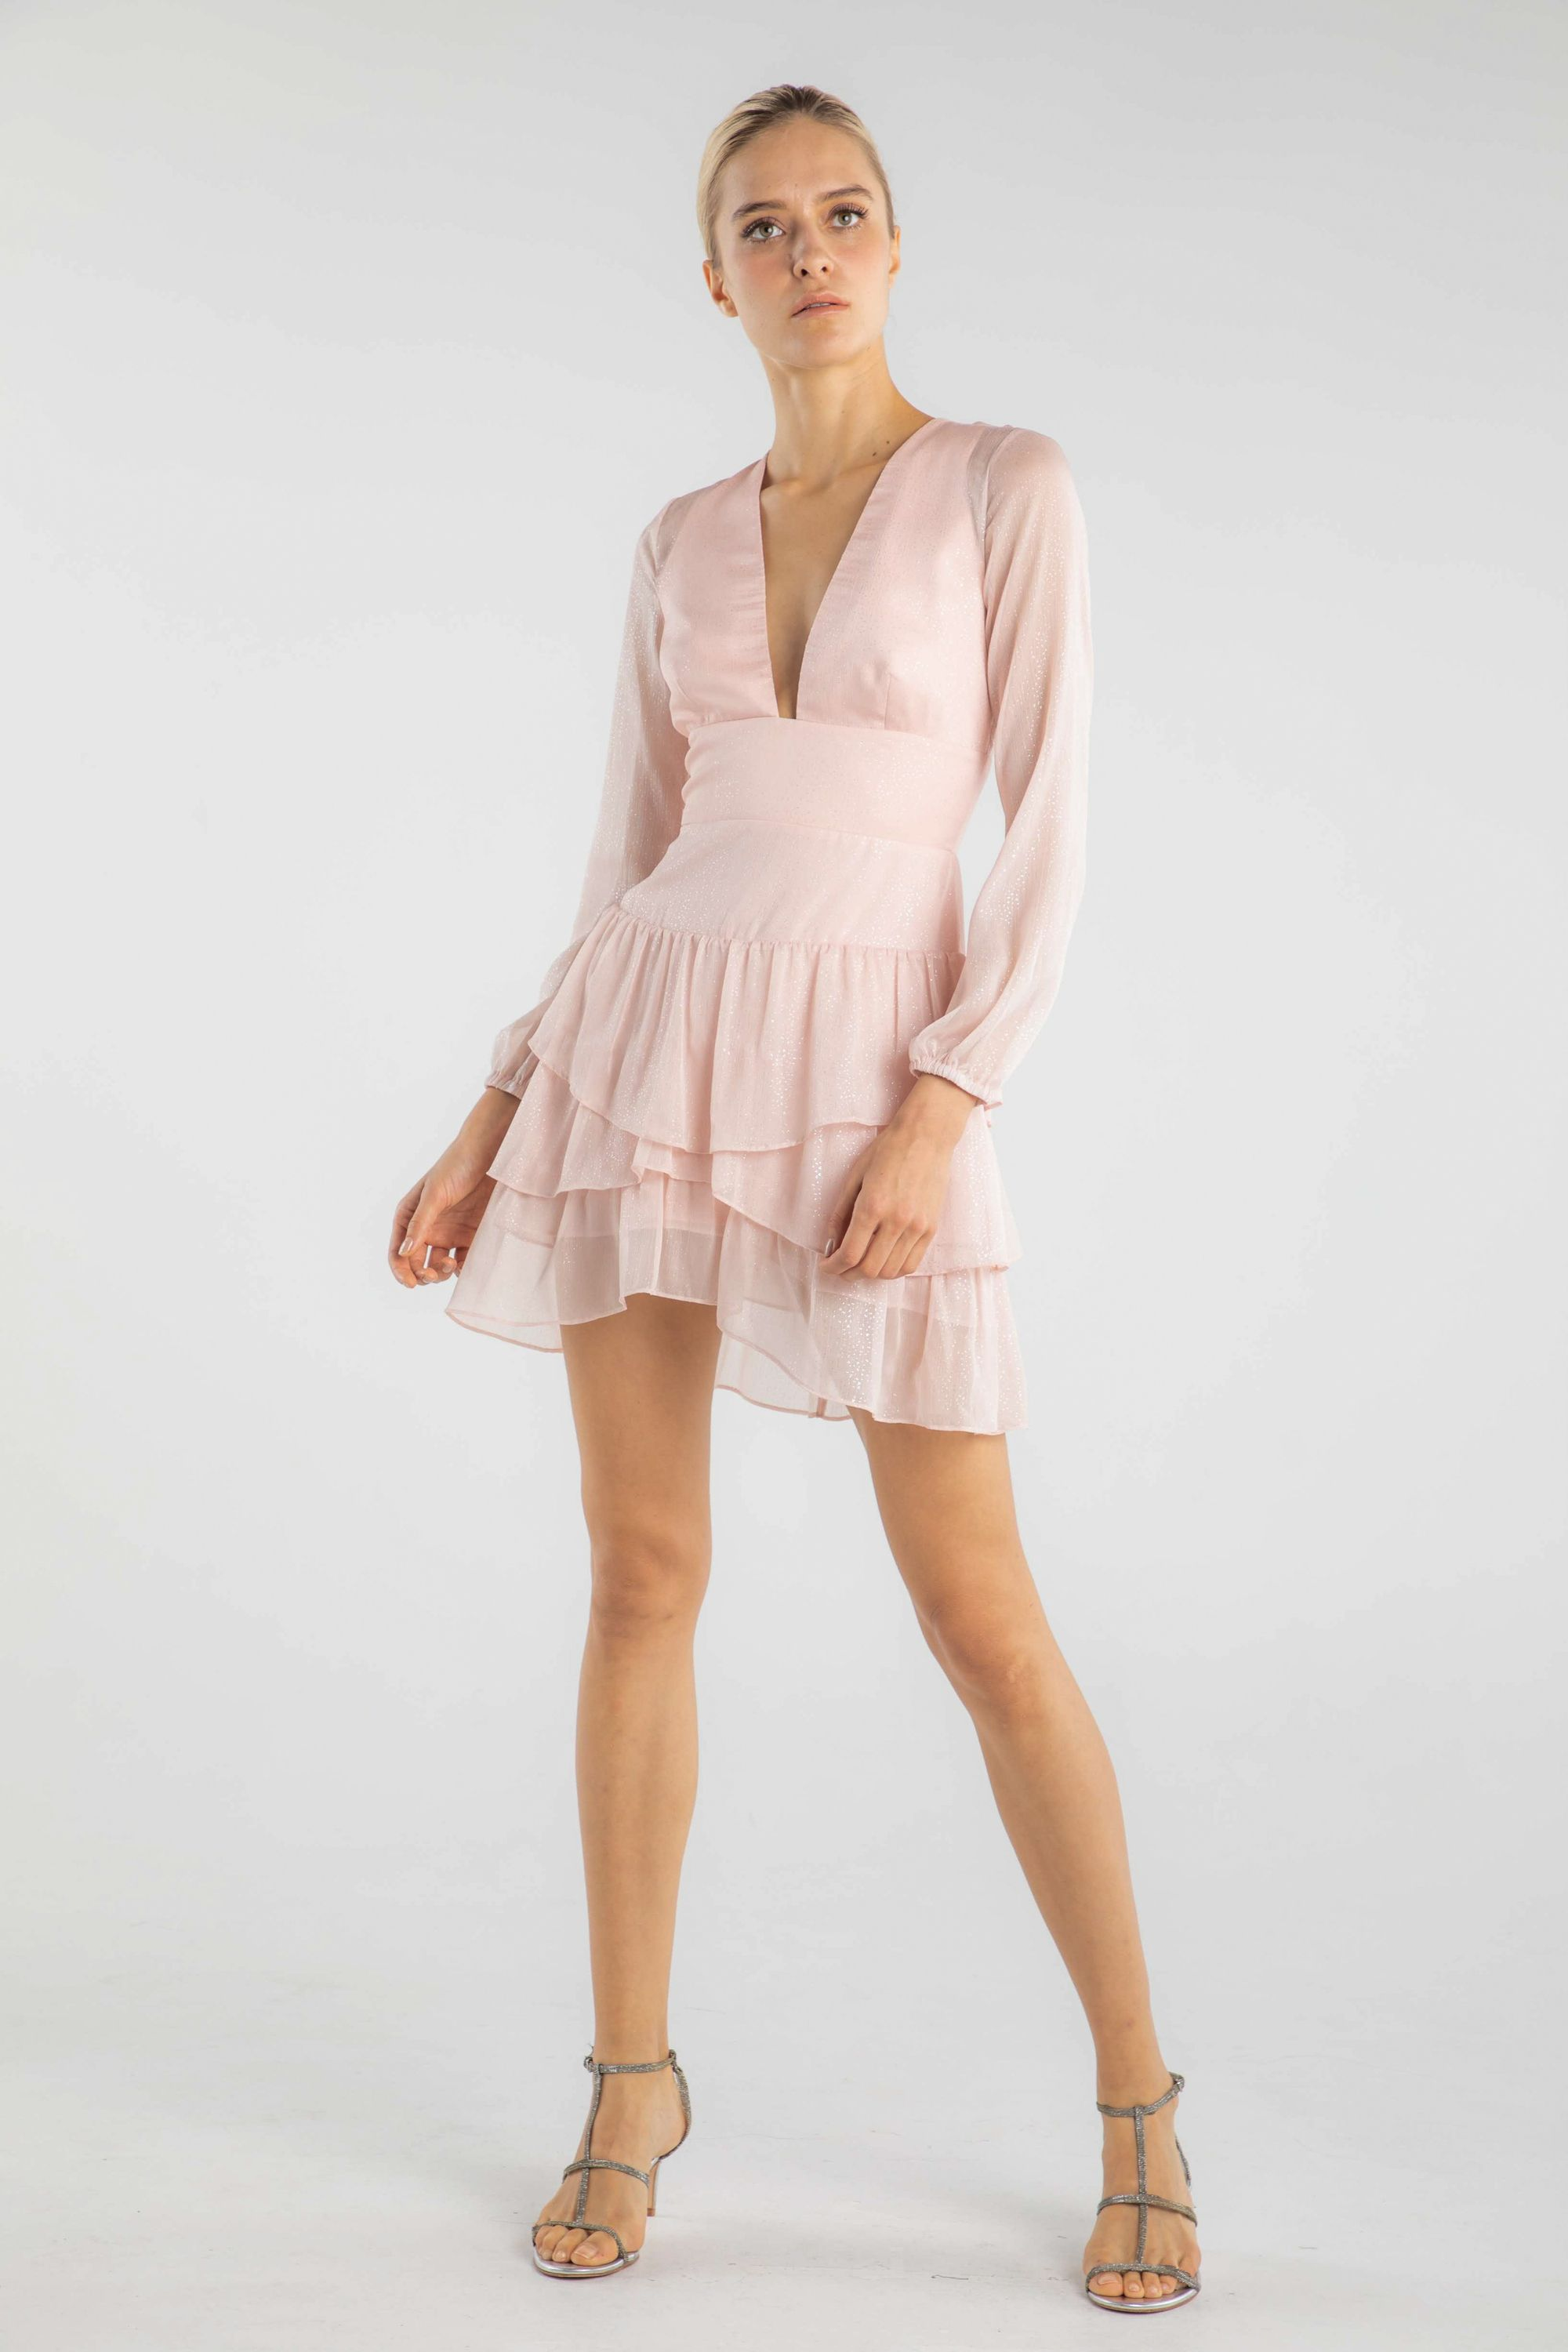 Pale Pink Chiffon Mini Dress With Layered Skirt Long Sleeves And Plunging Neckline Mini Dress Chiffon Mini Dress Mini Cocktail Dress [ 3000 x 2000 Pixel ]